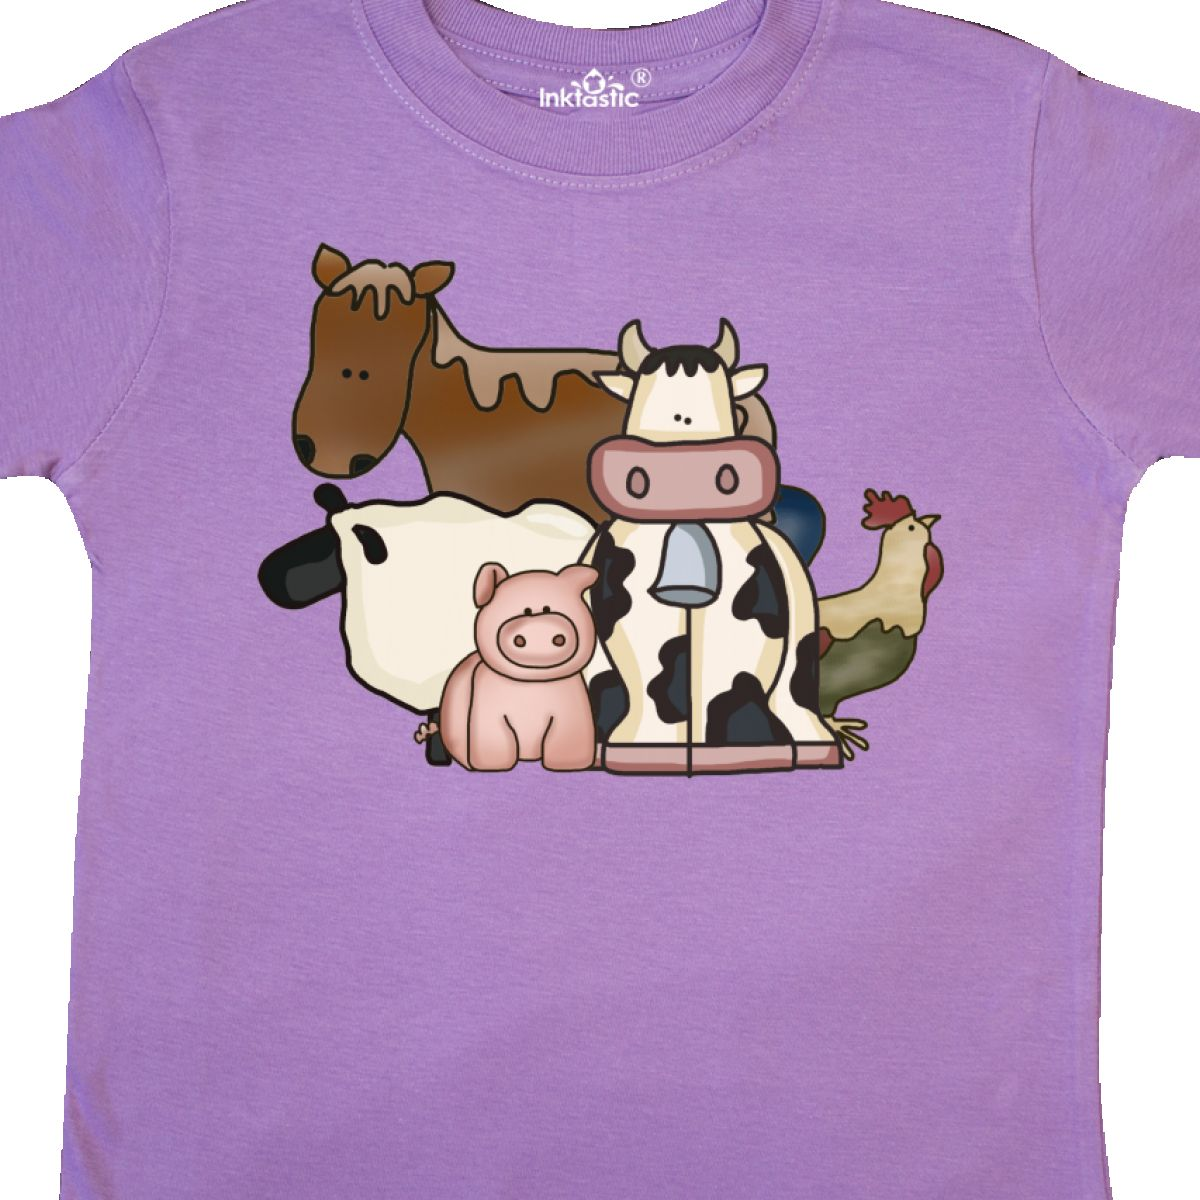 Inktastic-Critters-Toddler-T-Shirt-Horse-Sheep-Cow-Chicken-Pig-Farm-Animals-Gift thumbnail 18